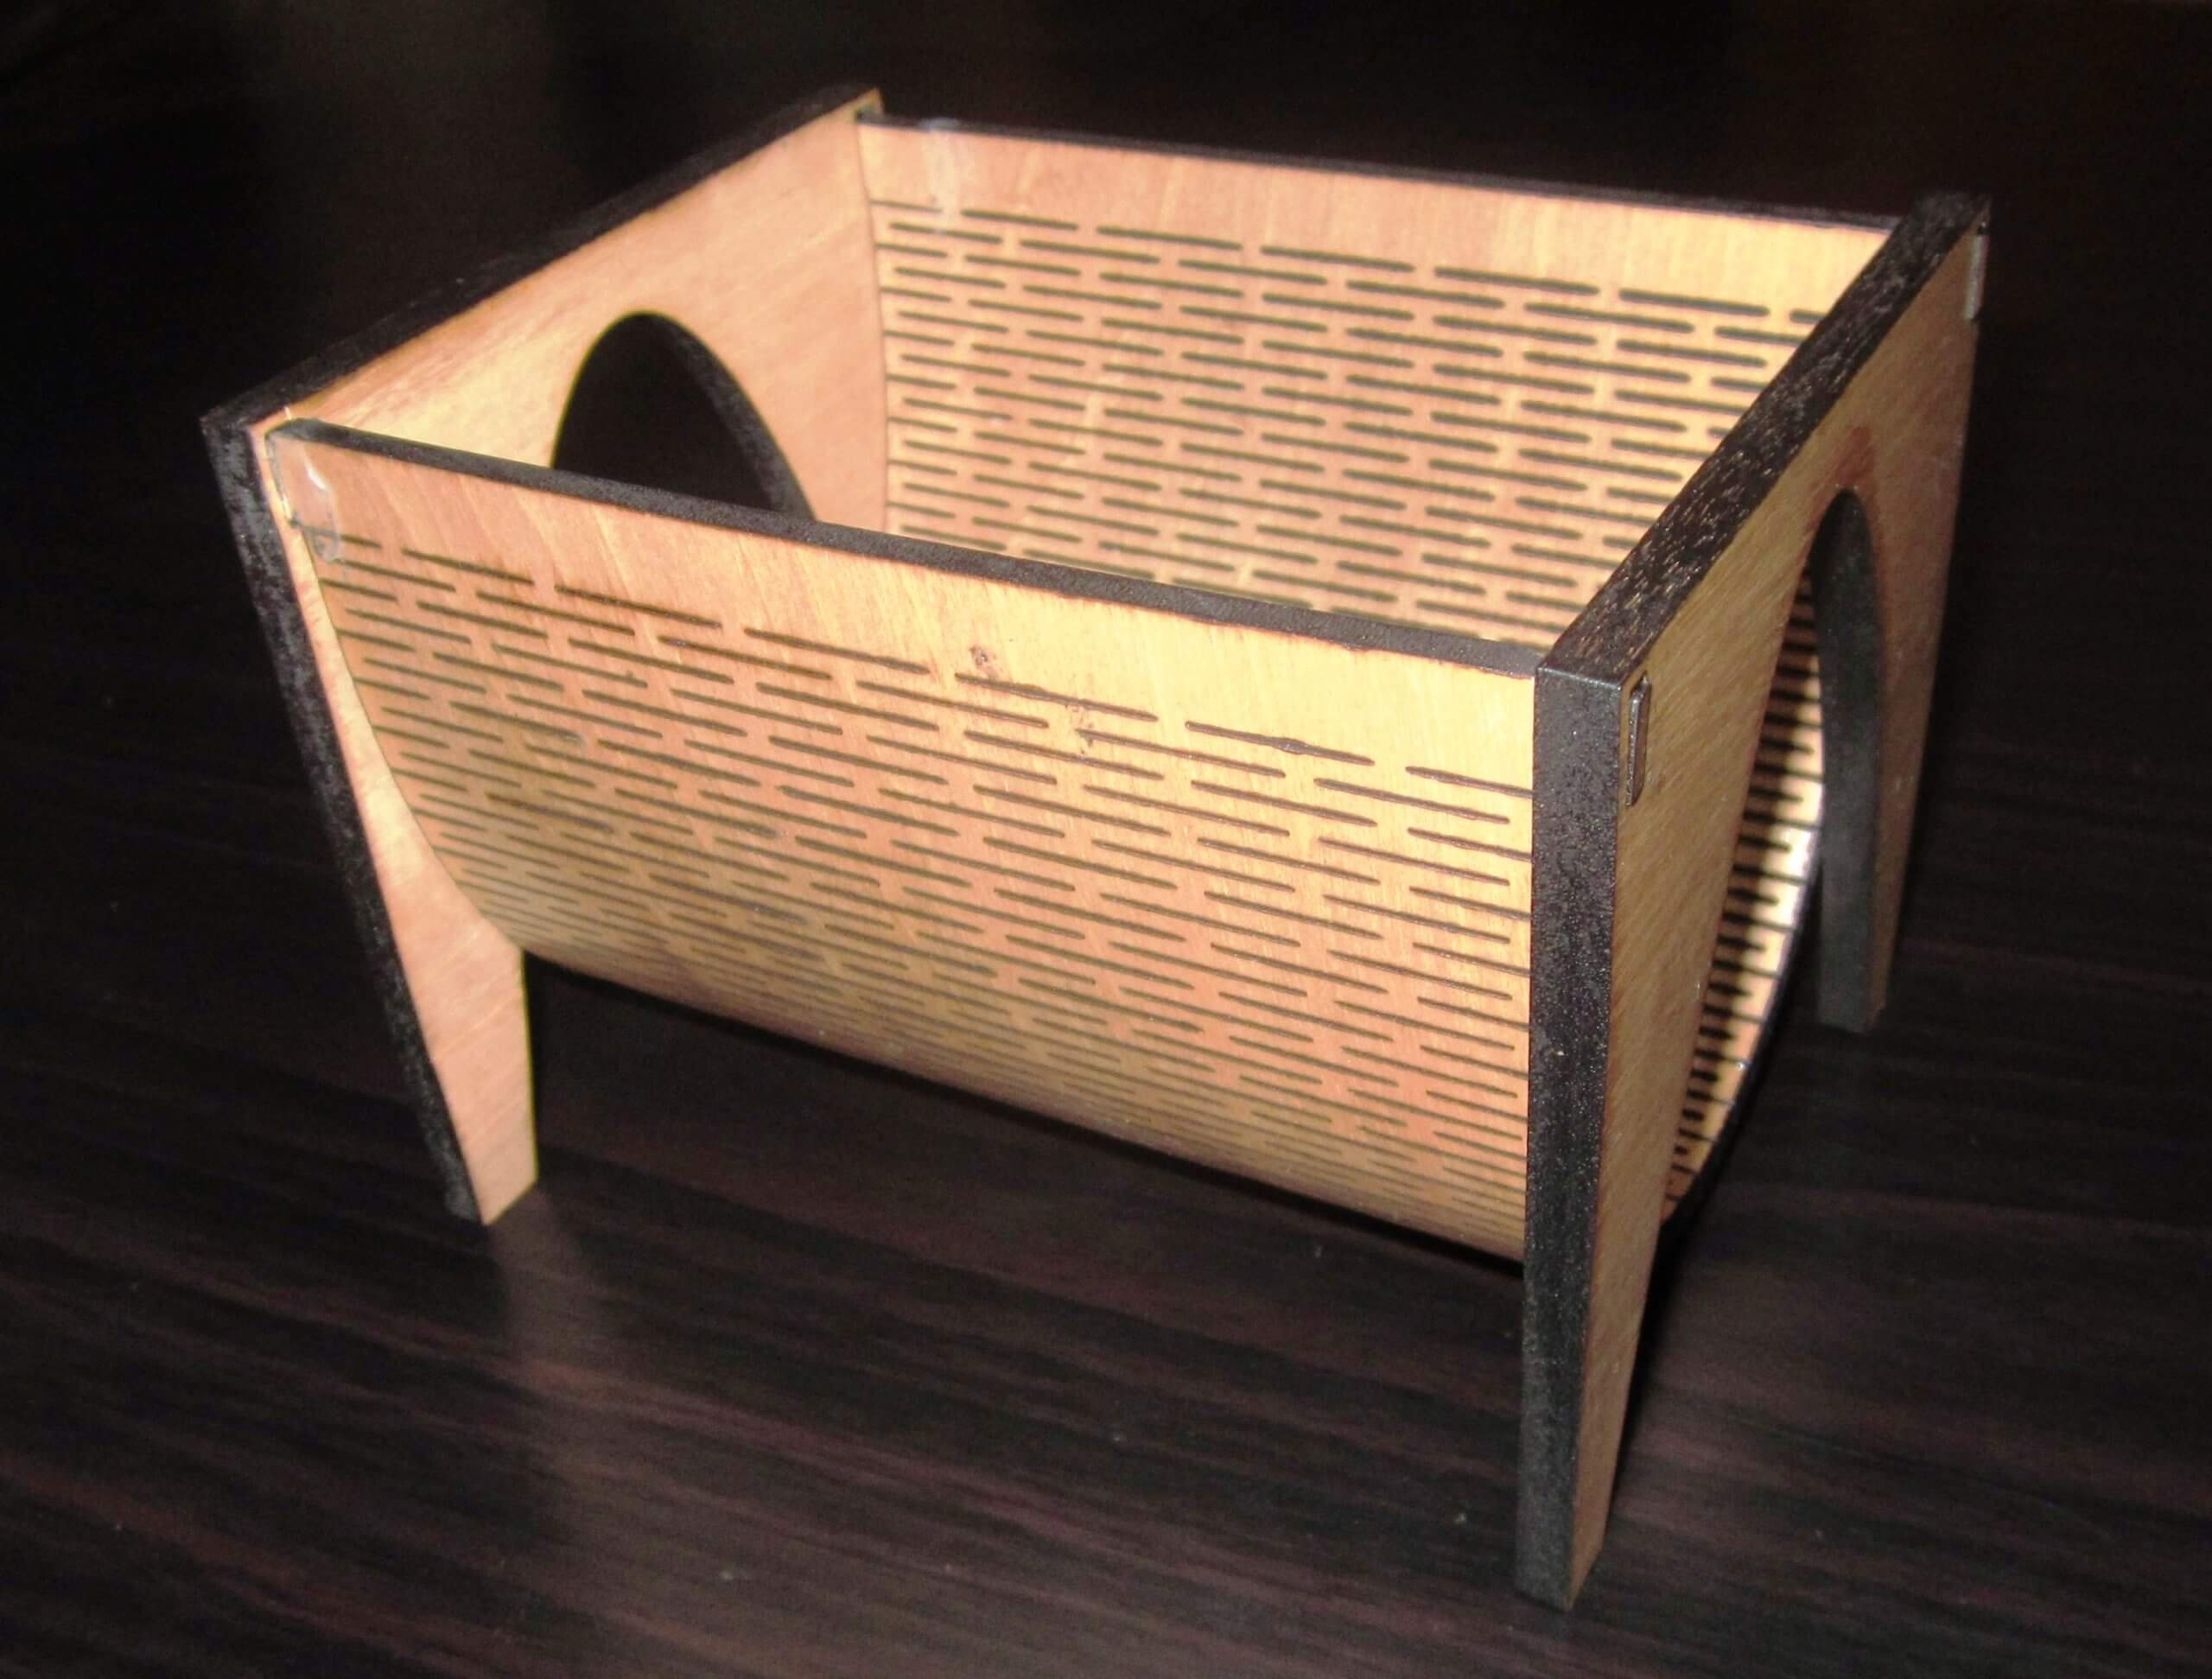 Living Hinge Curved Business Card Holders, Unique Office Accessories